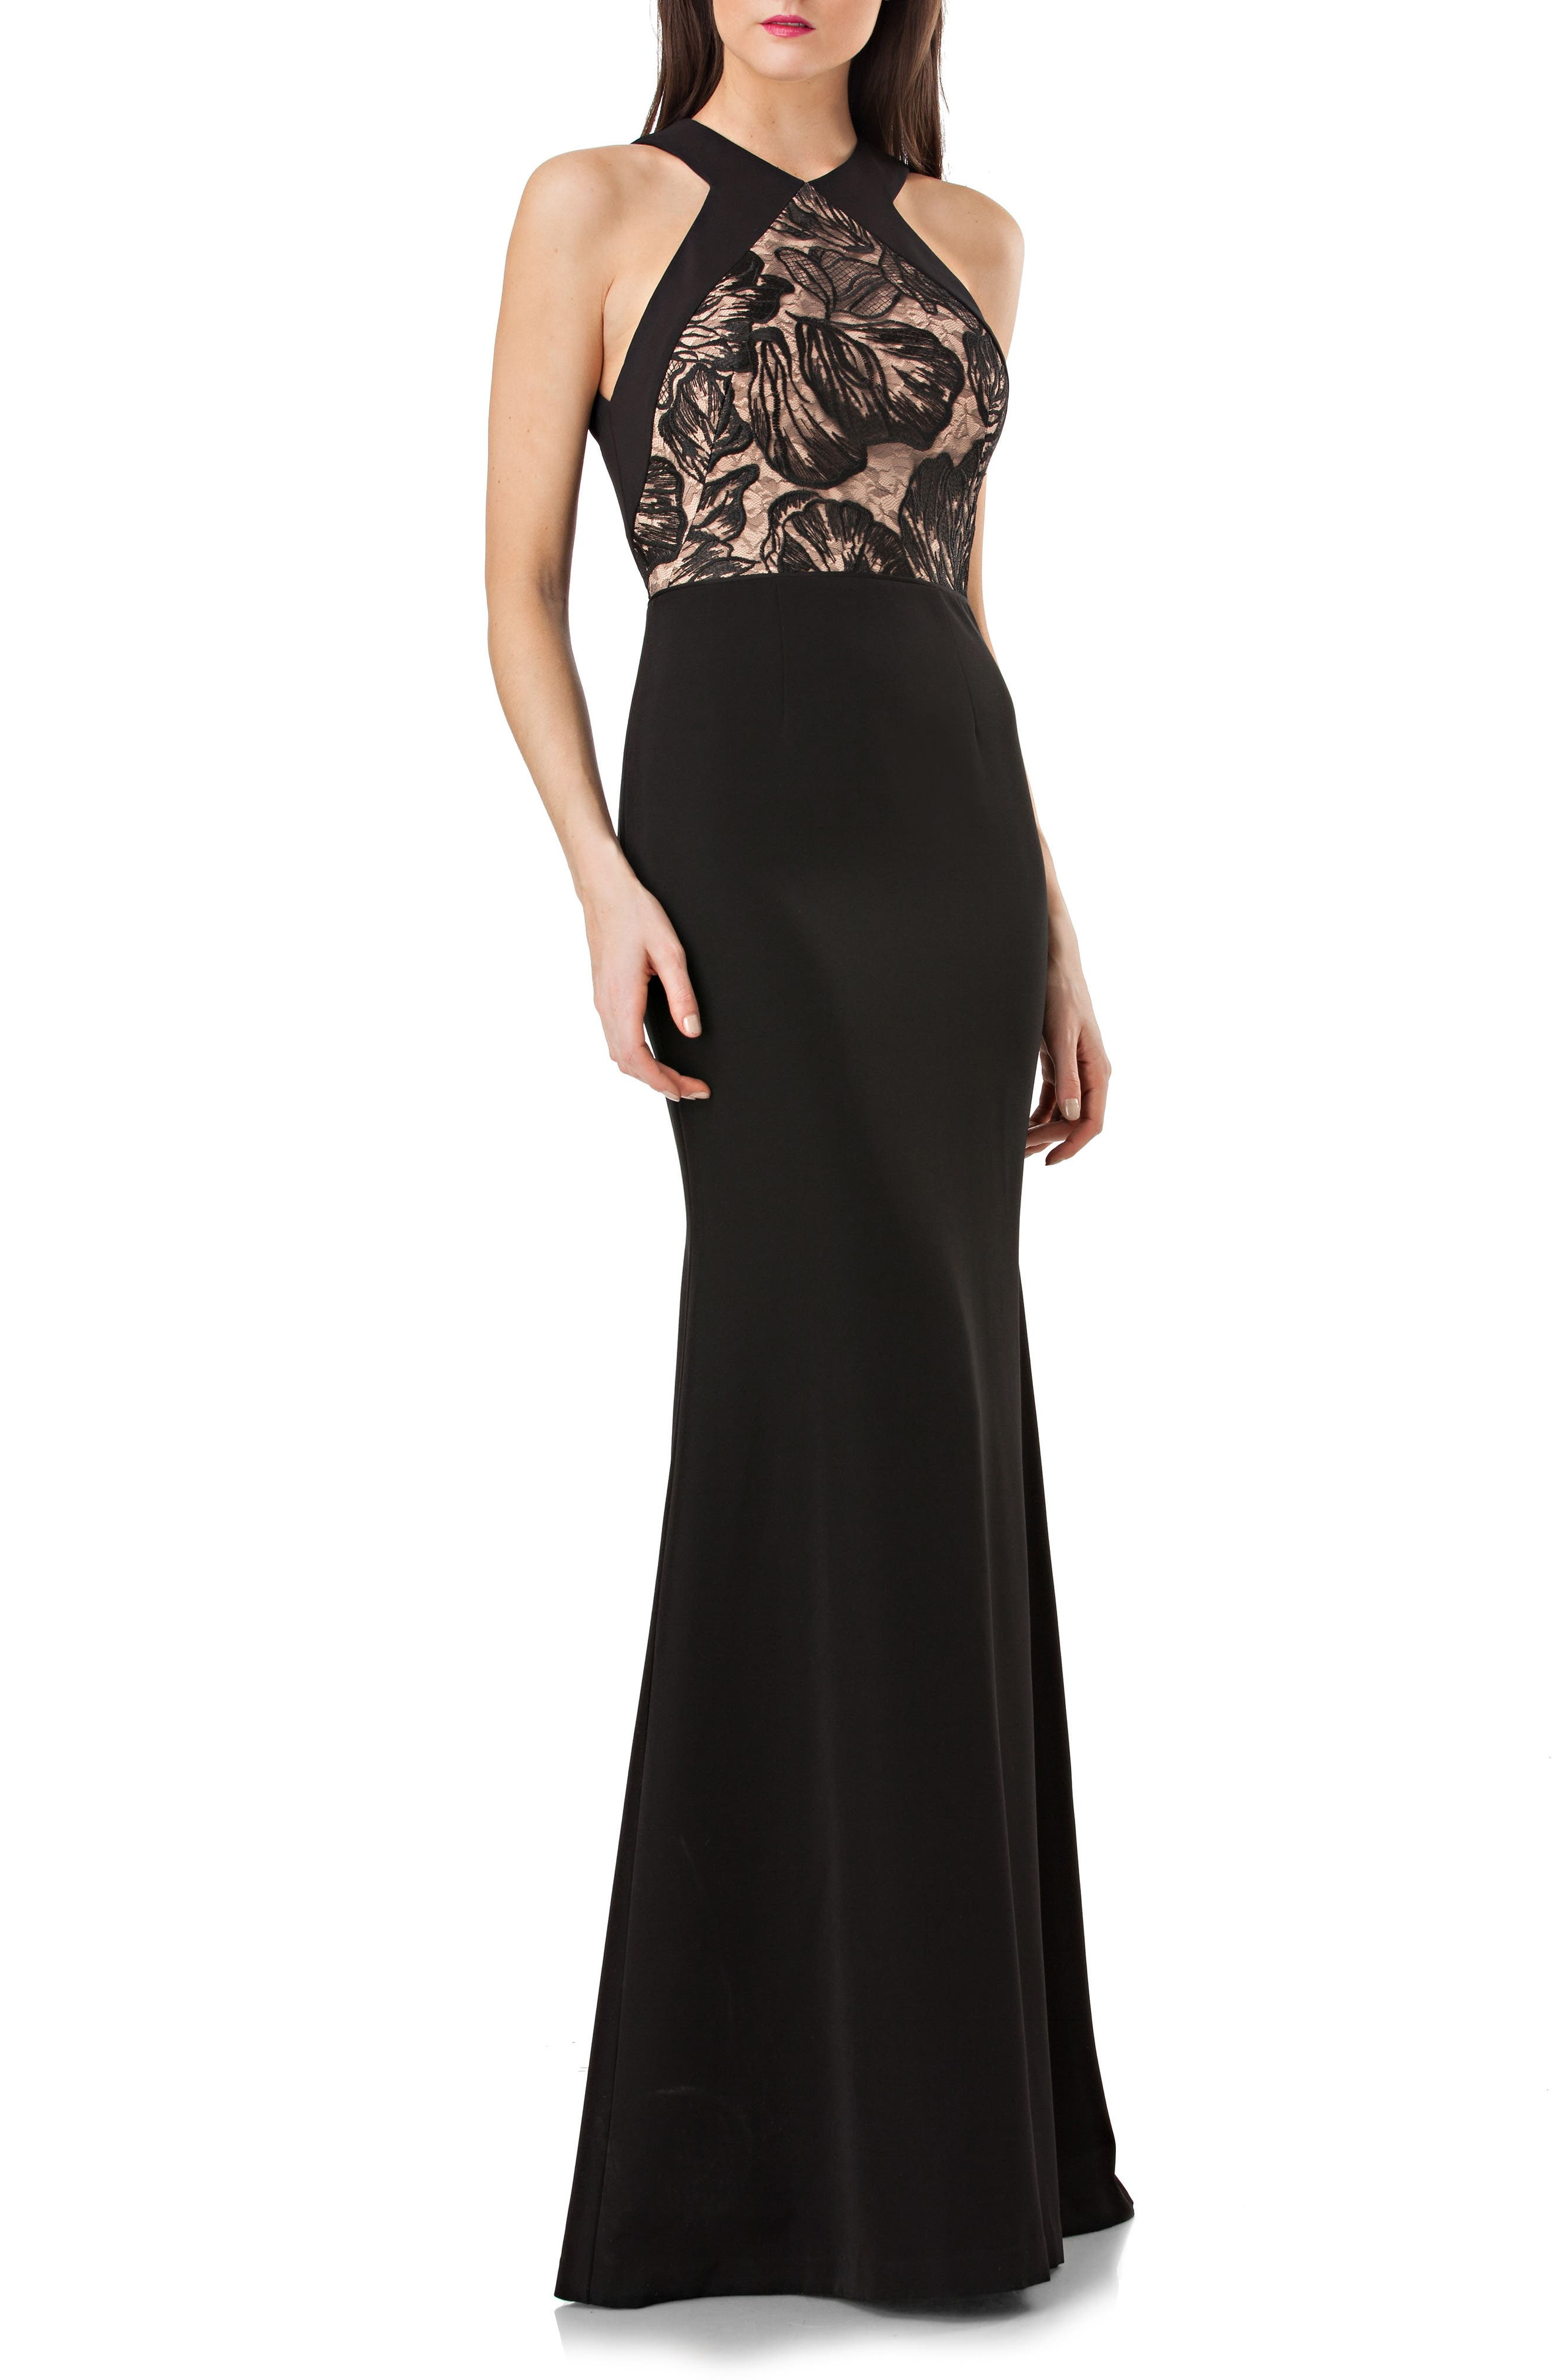 JS Collection Lace Front Halter Mermaid Gown,                         Main,                         color, Black/ Nude